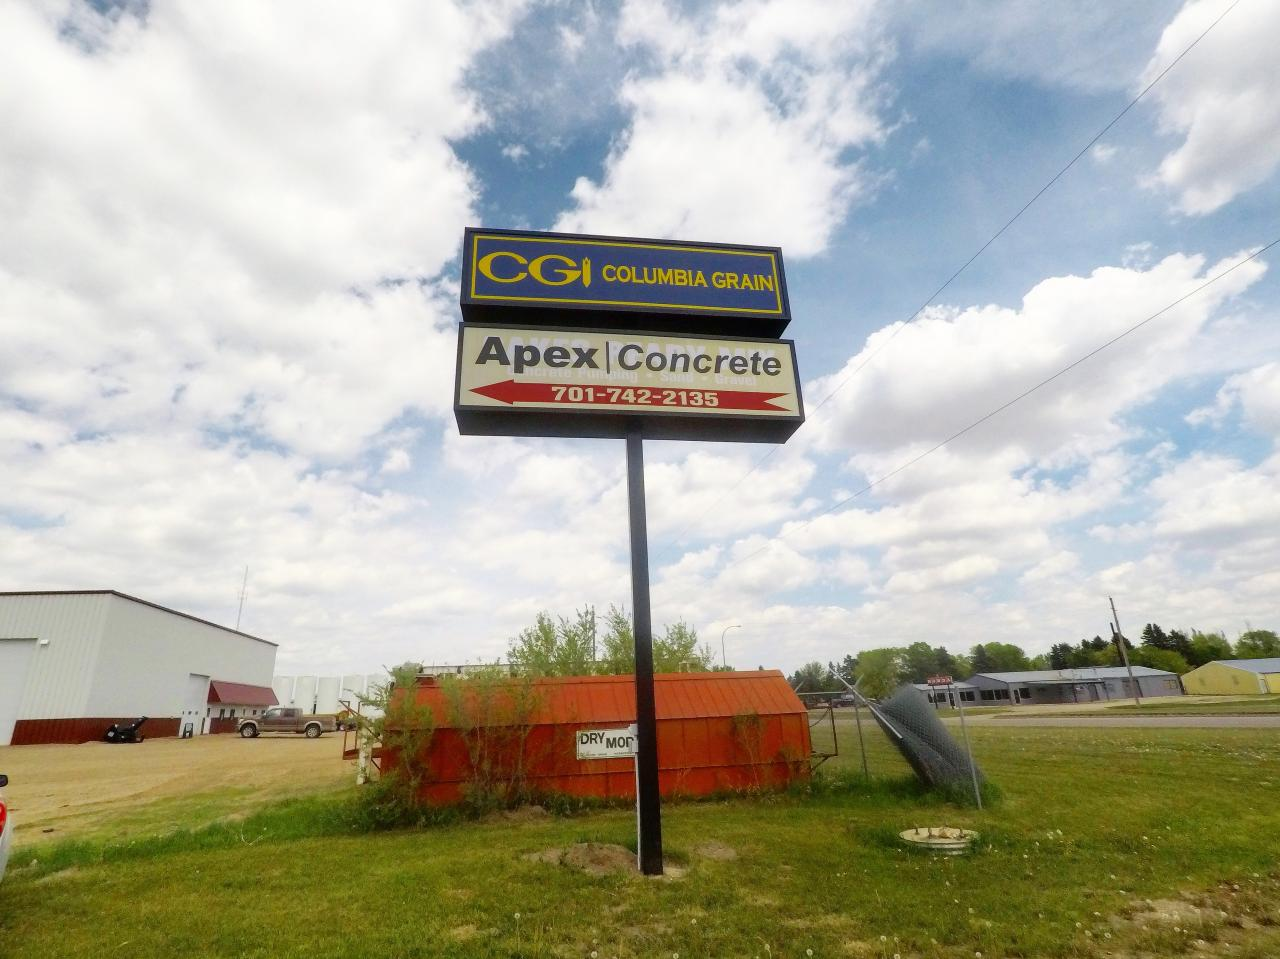 Columbia Grain & Apex Concrete